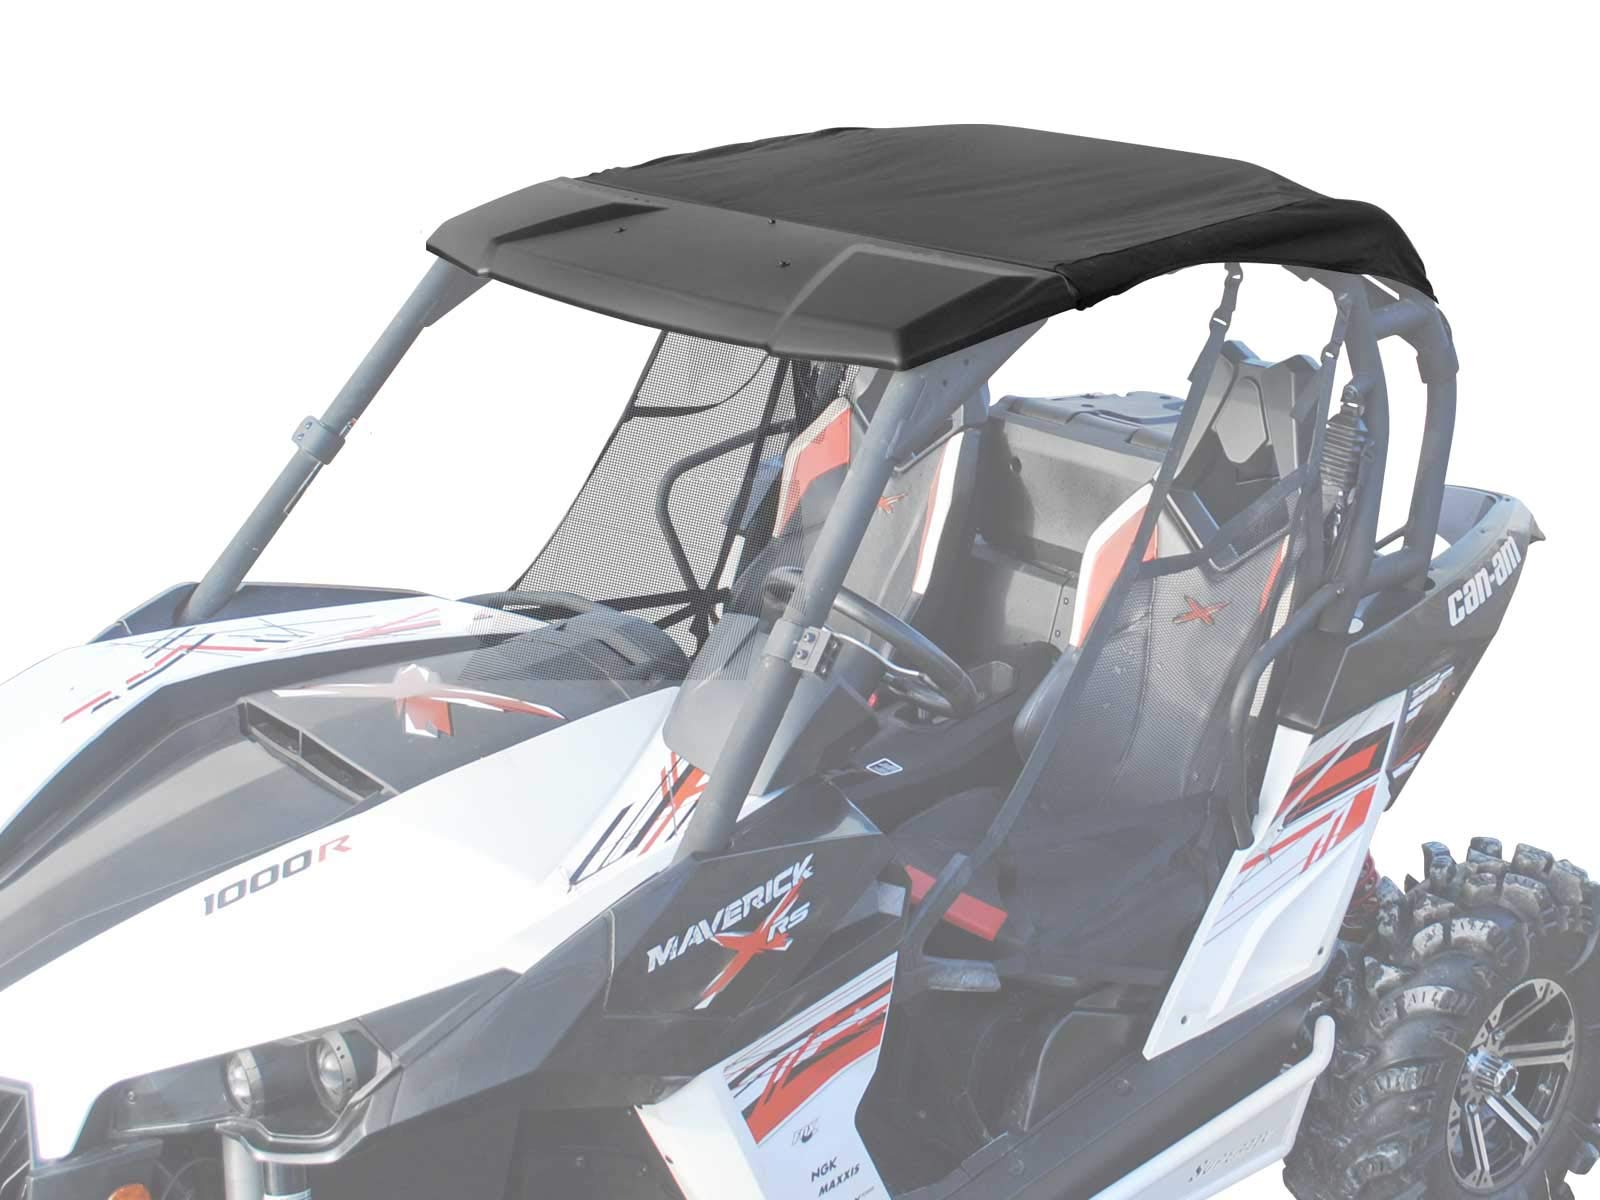 SuperATV Heavy Duty Soft Top Roof for Can-Am Maverick (2013-2018) - Easy To Install!